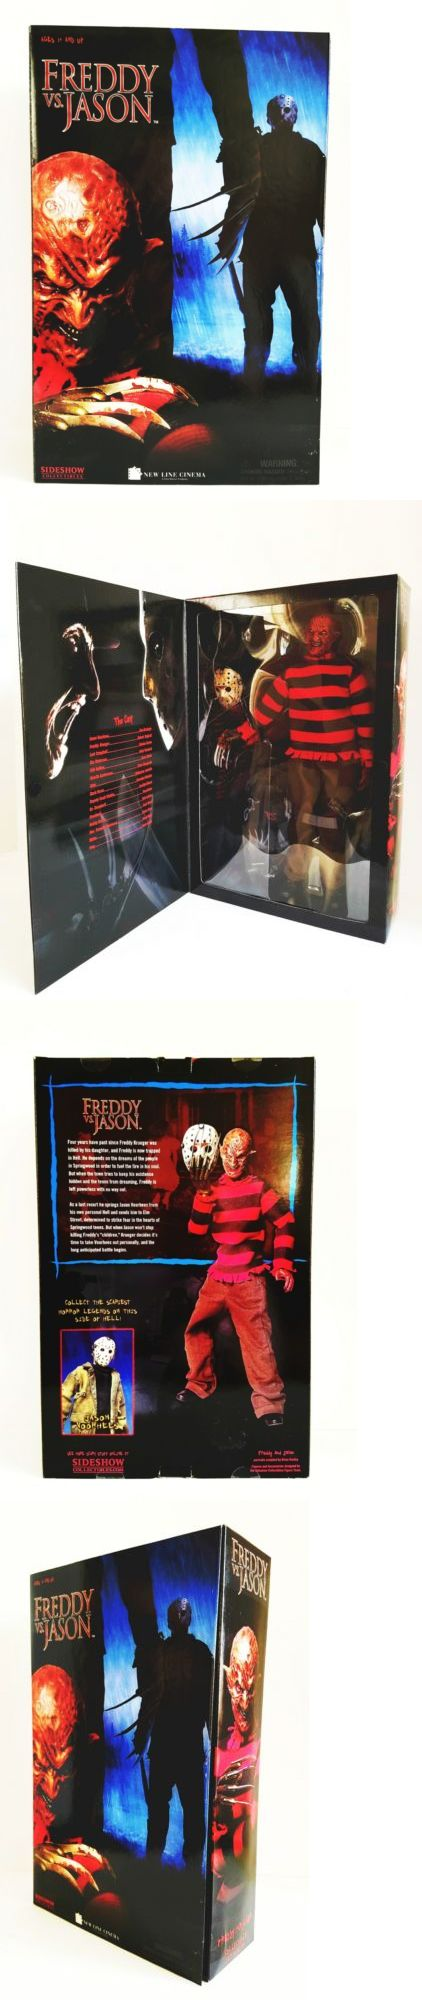 TV Movie and Video Games 75708: New Sideshow 1:6 Scale Freddy Vs Jason 12 Freddy Krueger Collectible Figure. -> BUY IT NOW ONLY: $98.99 on eBay!